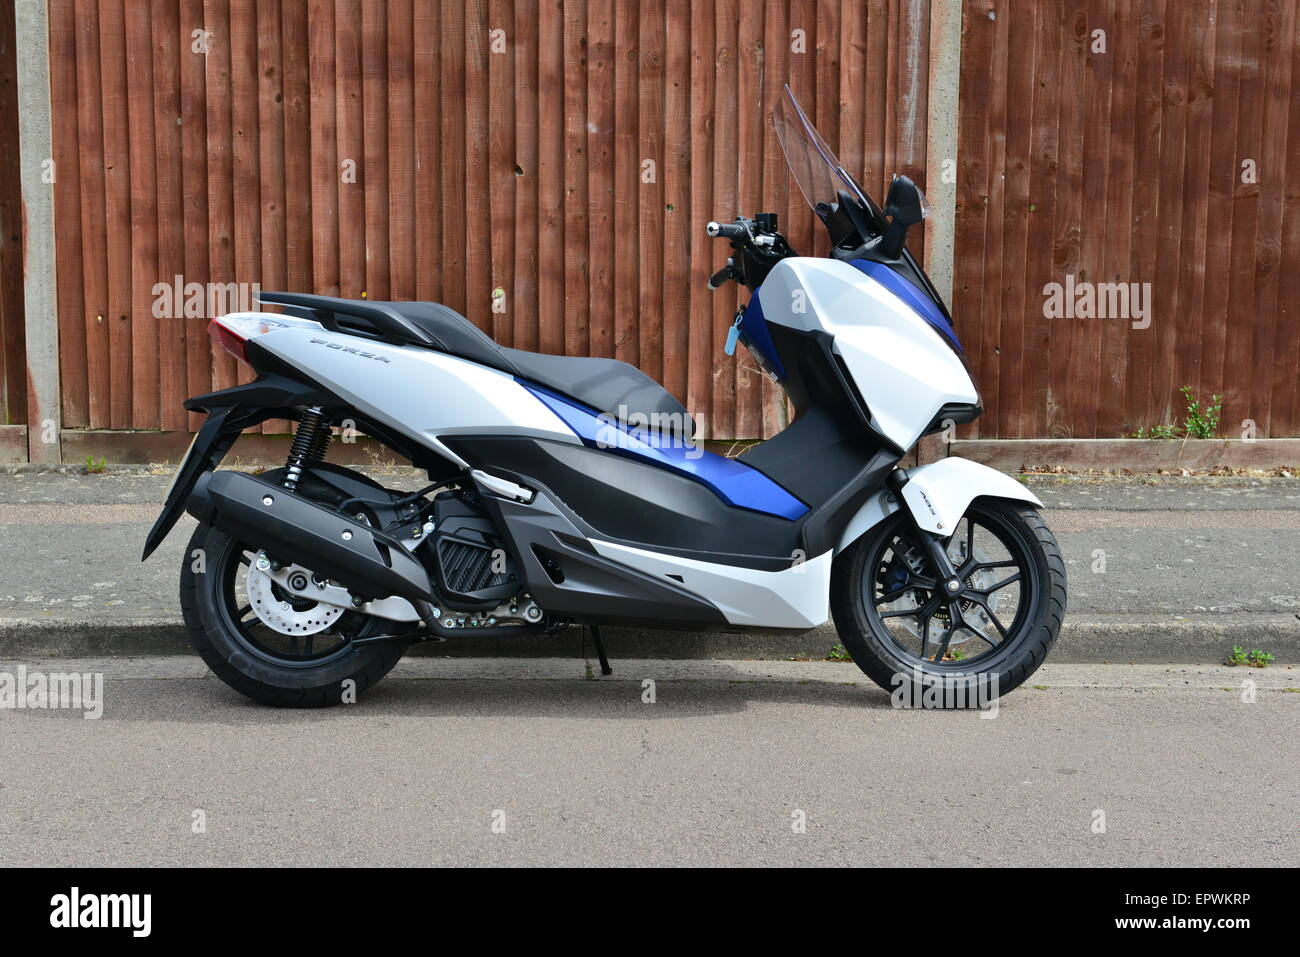 honda forza 125 scooter stock photo 82928266 alamy. Black Bedroom Furniture Sets. Home Design Ideas